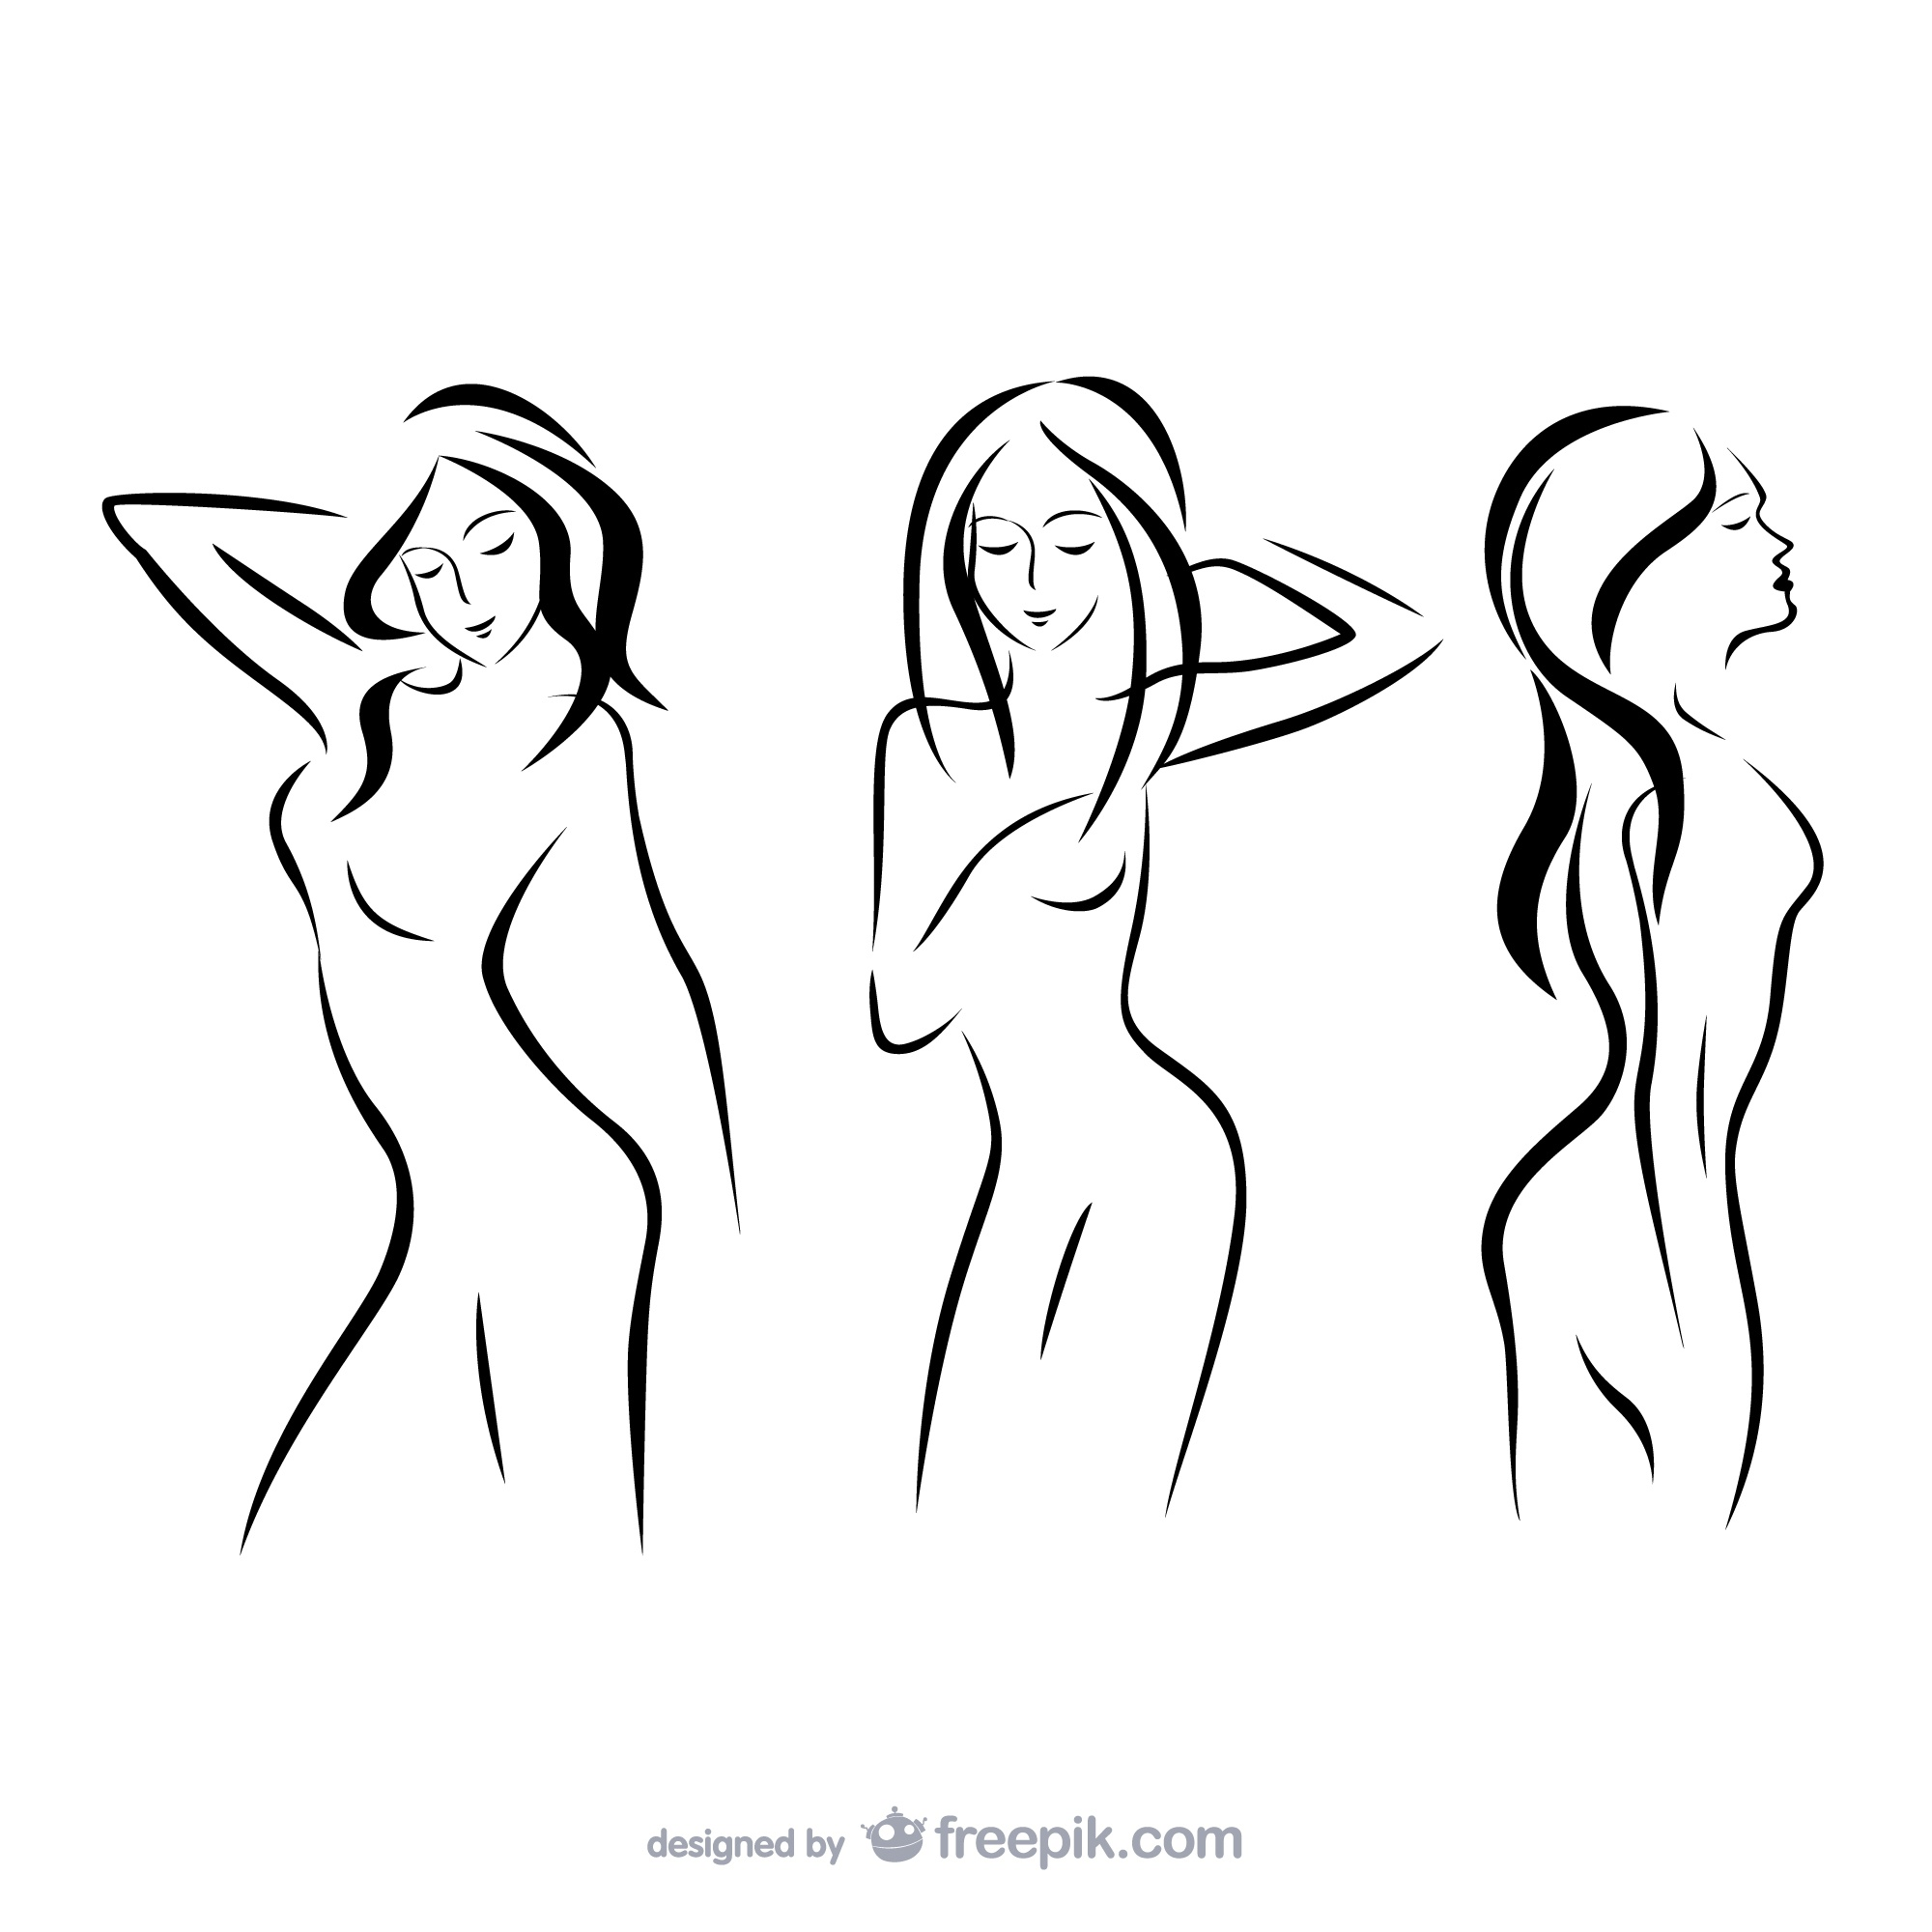 Women outline silhouettes